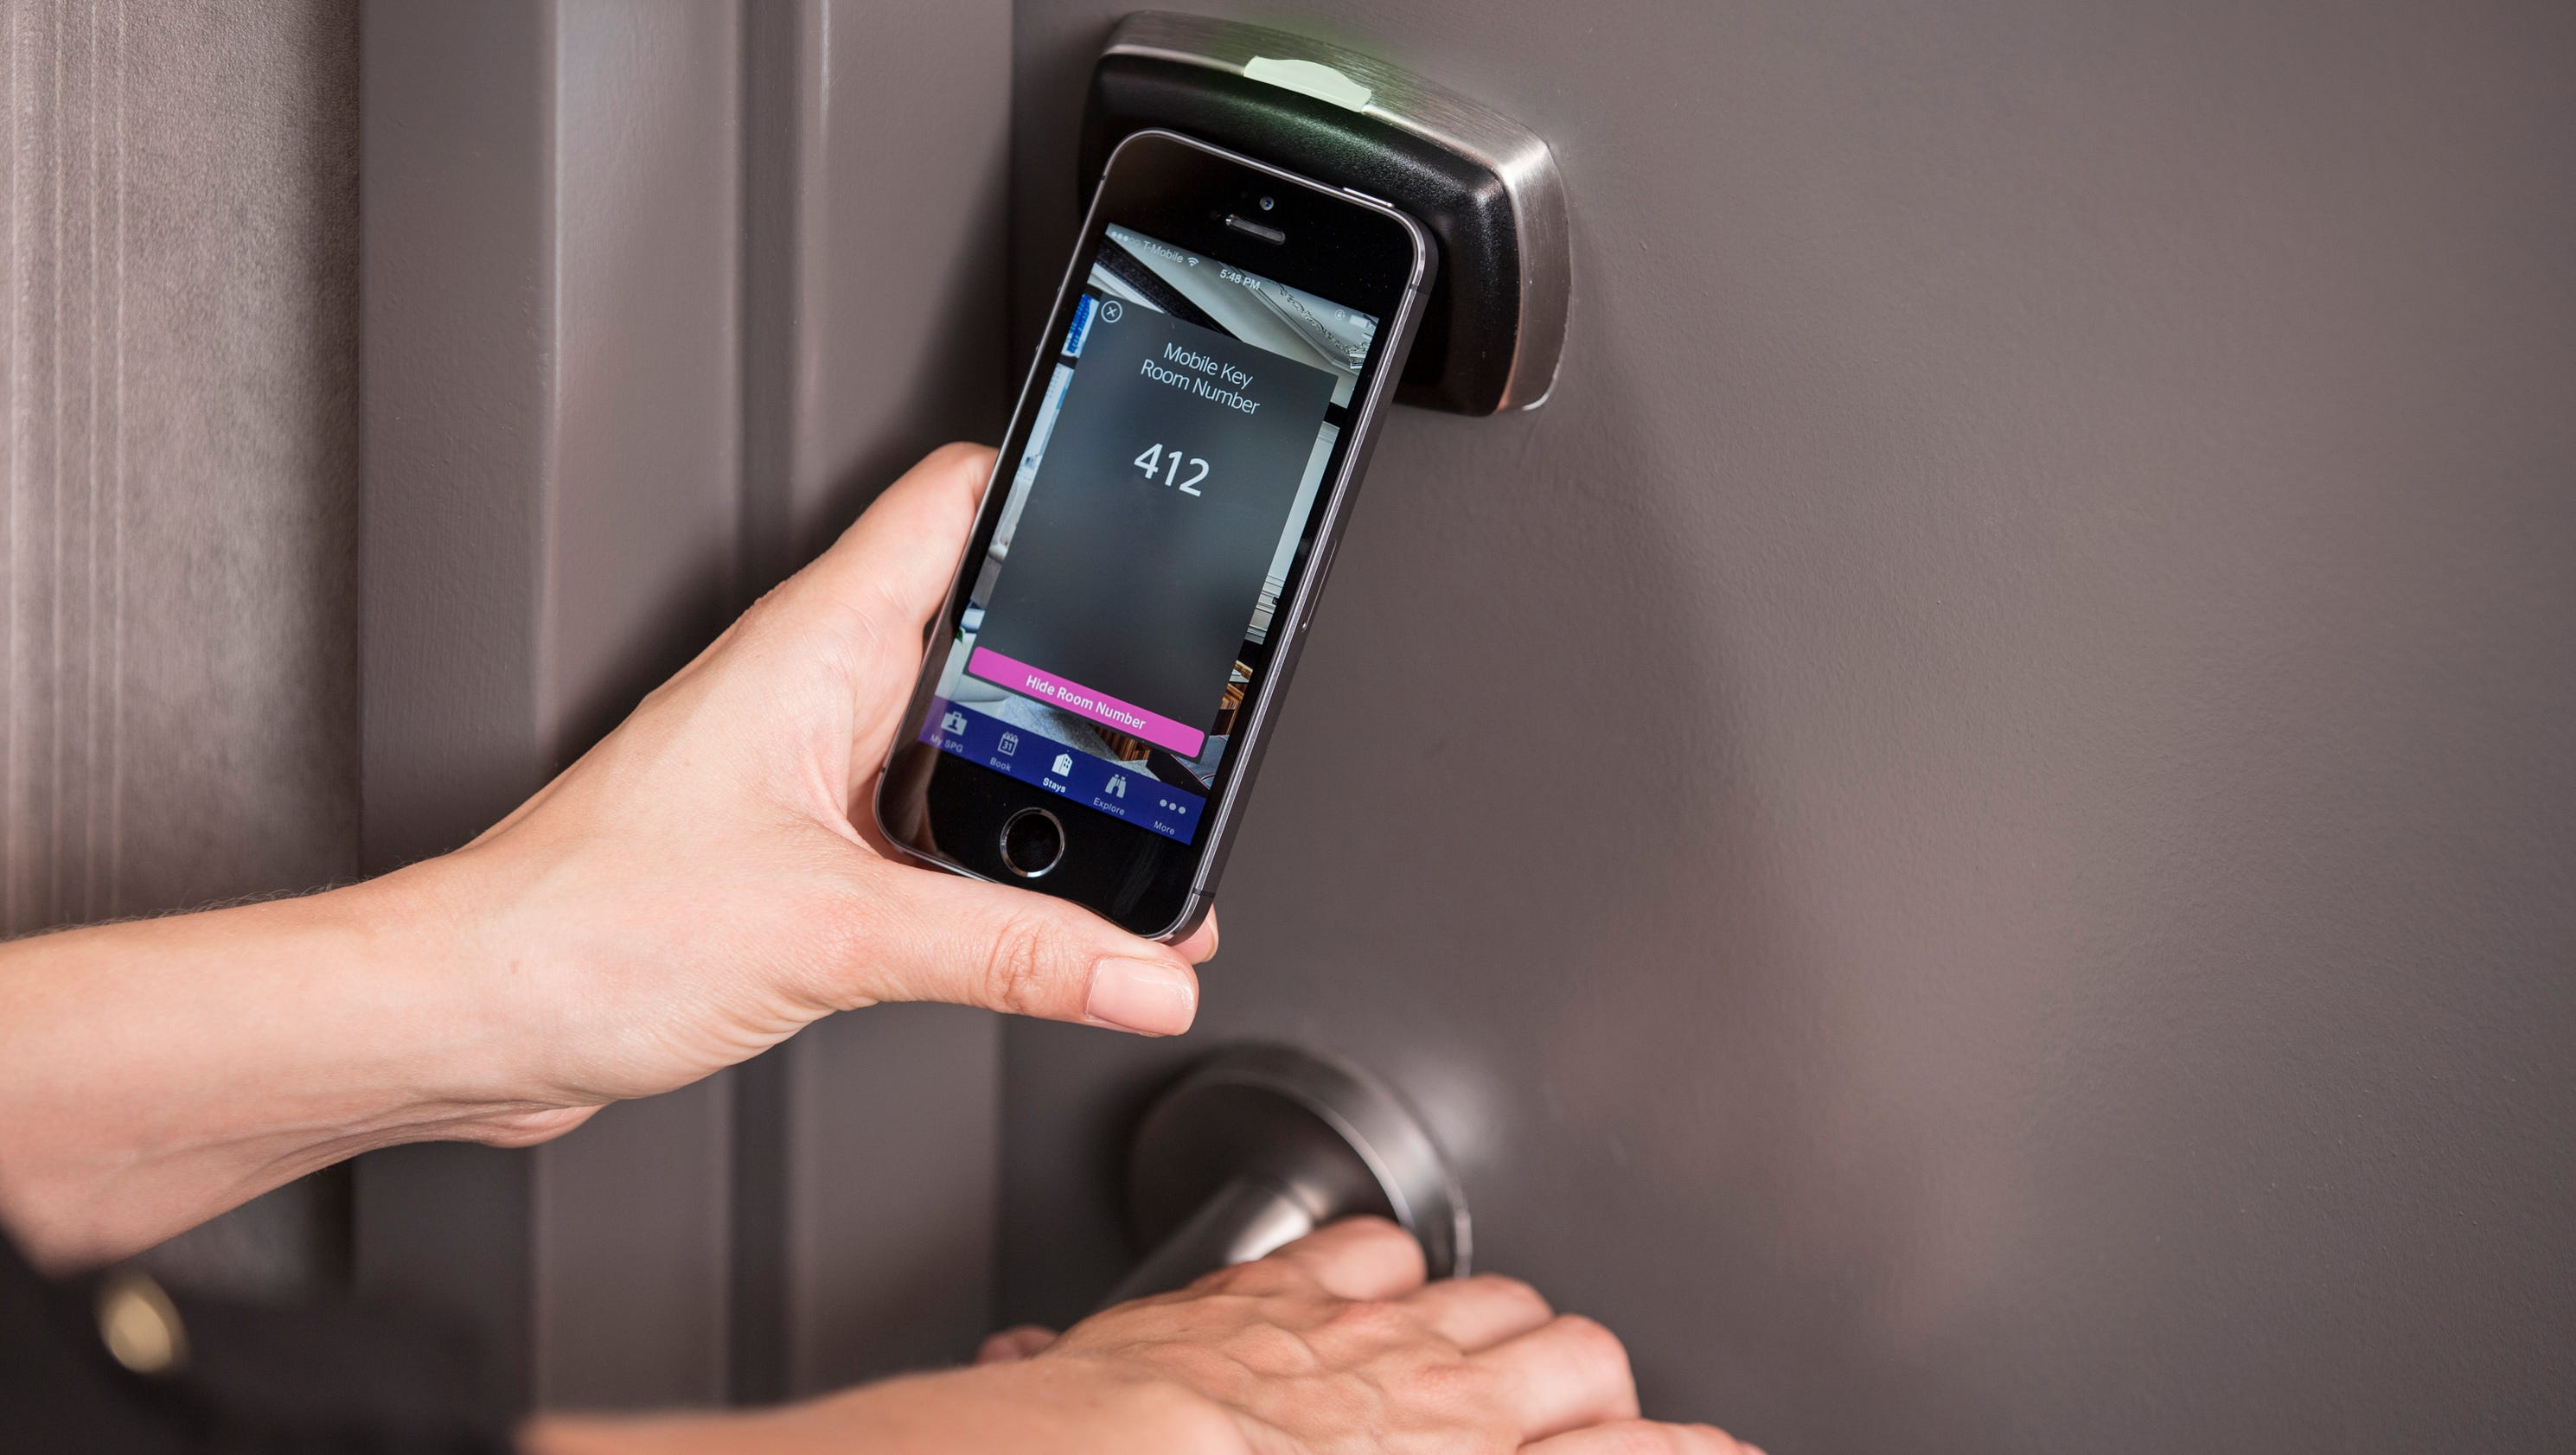 Check into a hotel with your smartphone